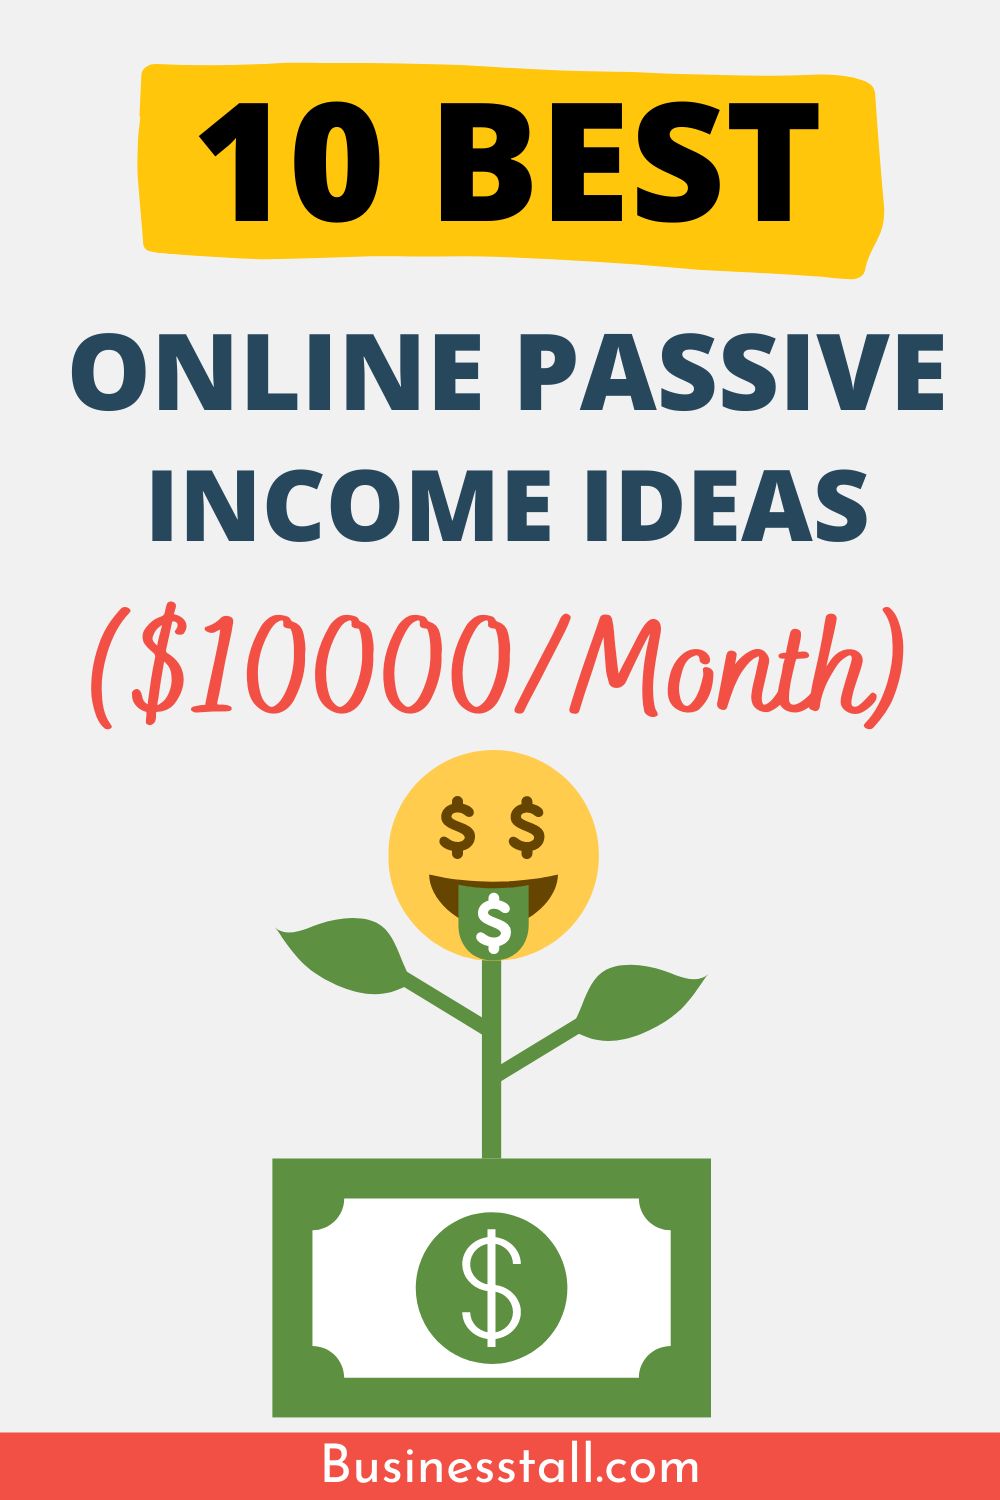 10 Best Online Passive Income Ideas to Make Money While Sleeping